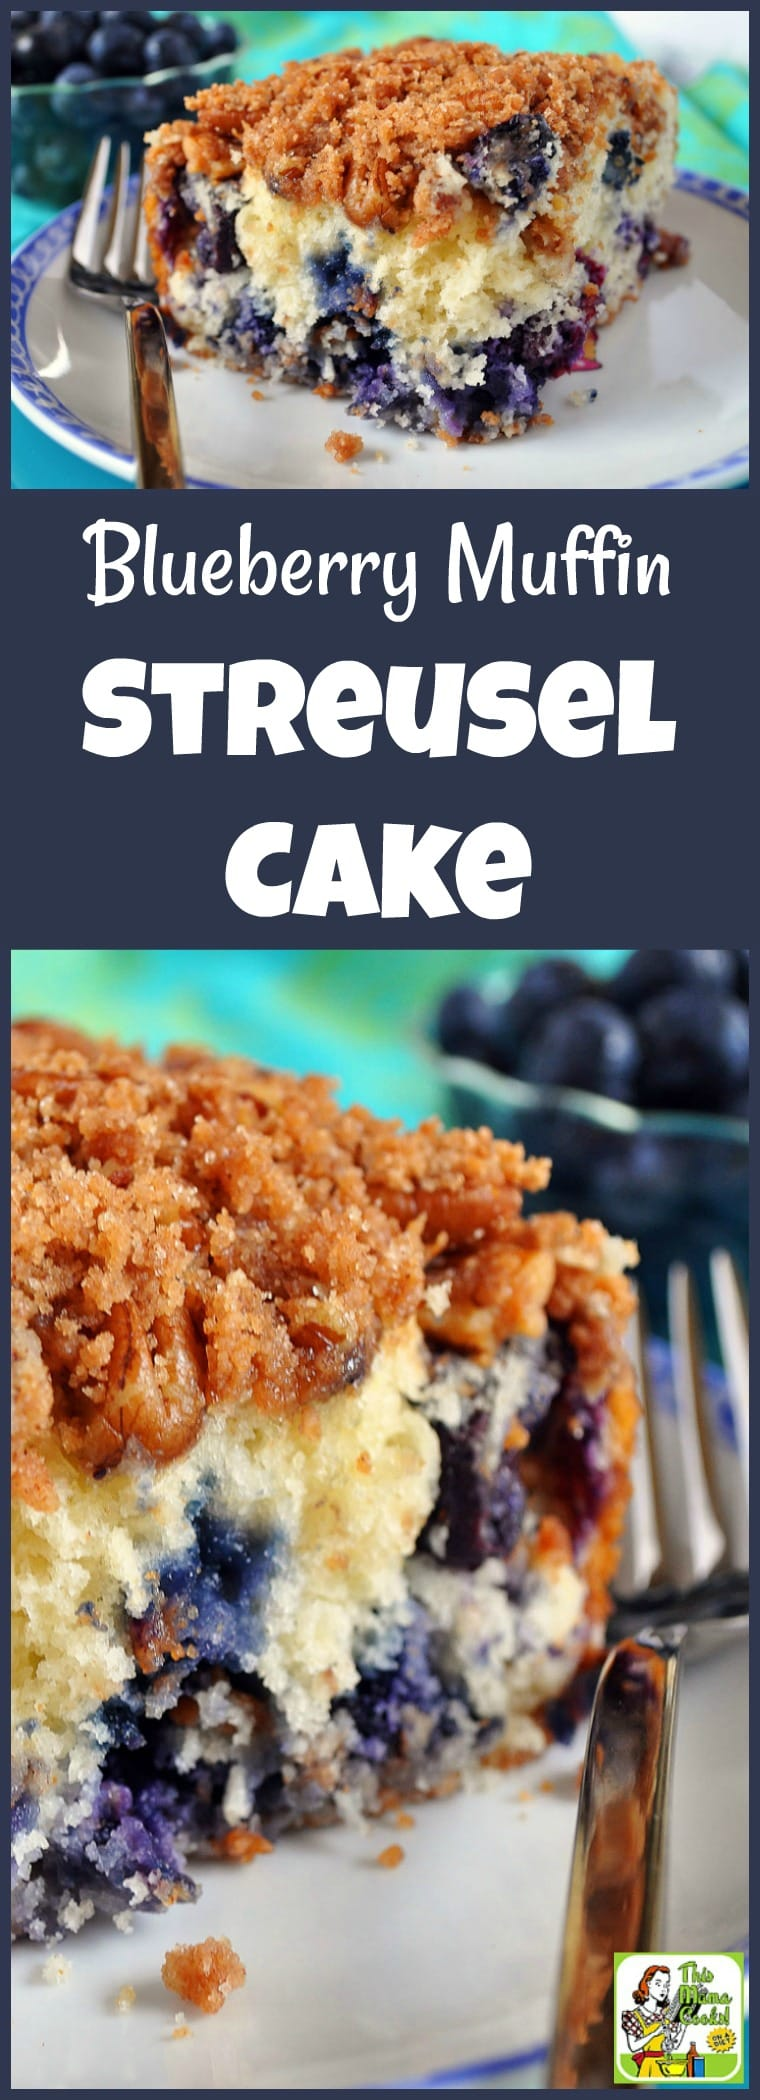 Make Blueberry Muffin Streusel Cake for brunch, a work breakfast meeting, or snack. (Recipe comes with a gluten free and sugar free option.) #recipes #recipeoftheday #healthyrecipes #easyrecipe #easyrecipe #blueberries #baking #bakingrecipes #easybaking #sugarfreerecipes #sugarfree #cake #cakerecipes #snacks #snackrecipes #diabeticrecipes #diabeticlifestyle #diabetic #diabeticliving